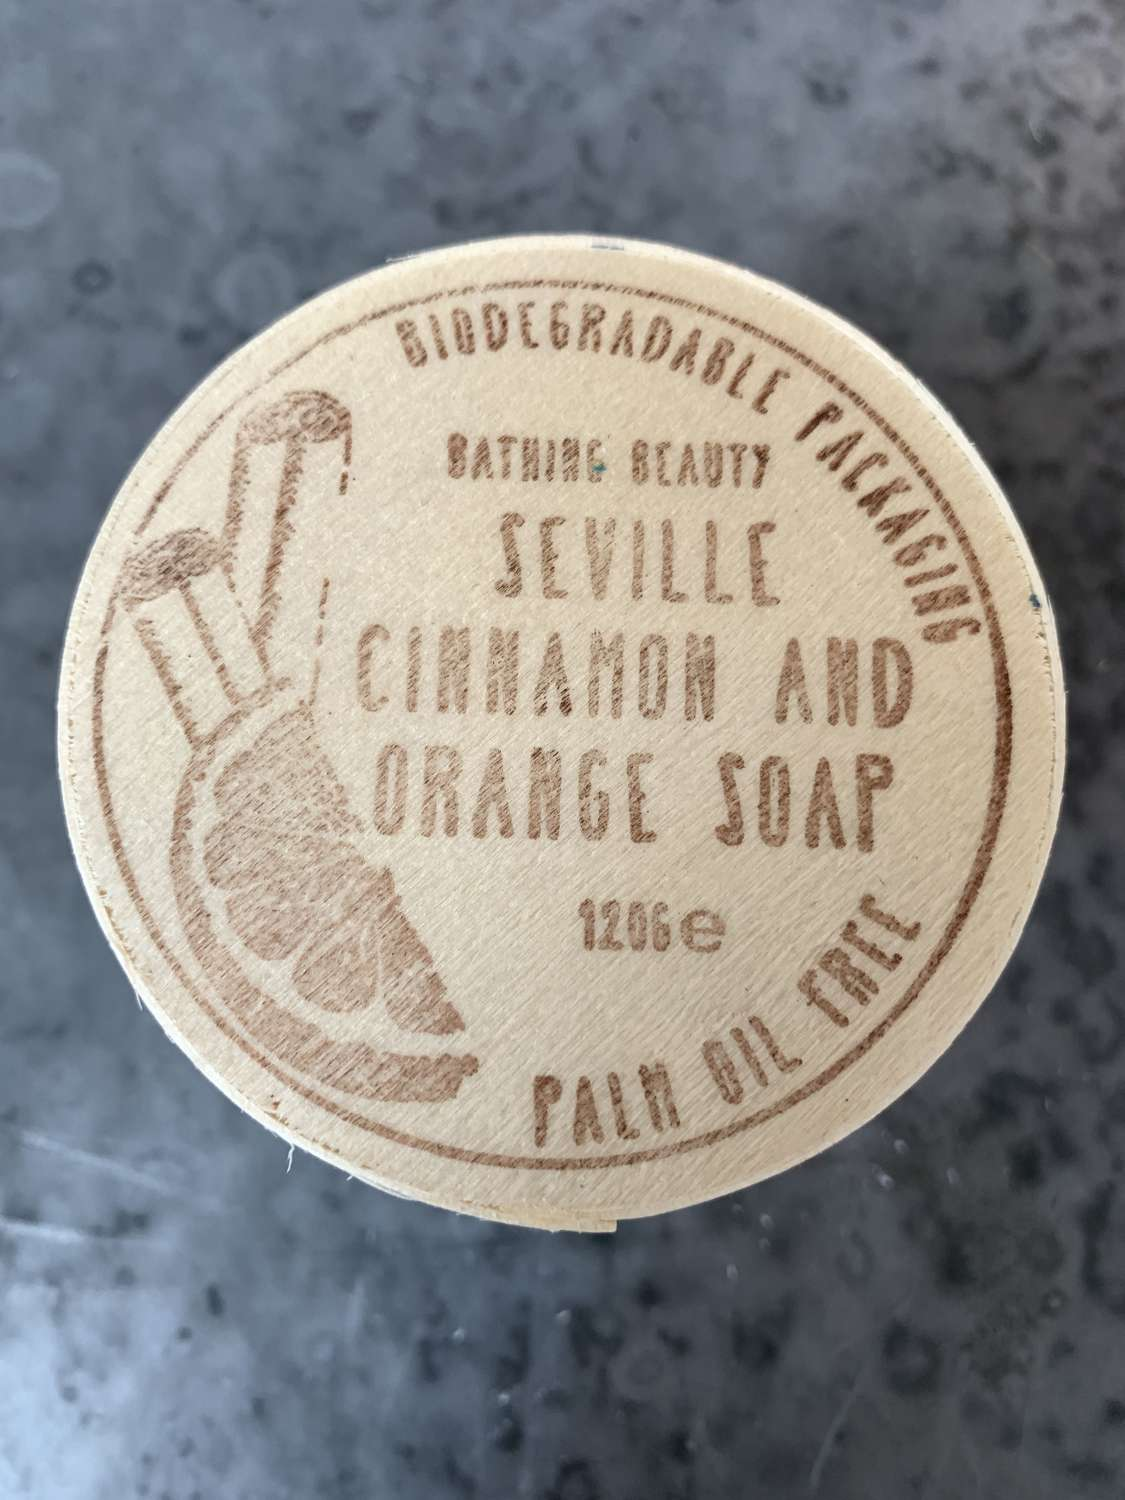 Bathing Beauty Seville Soap